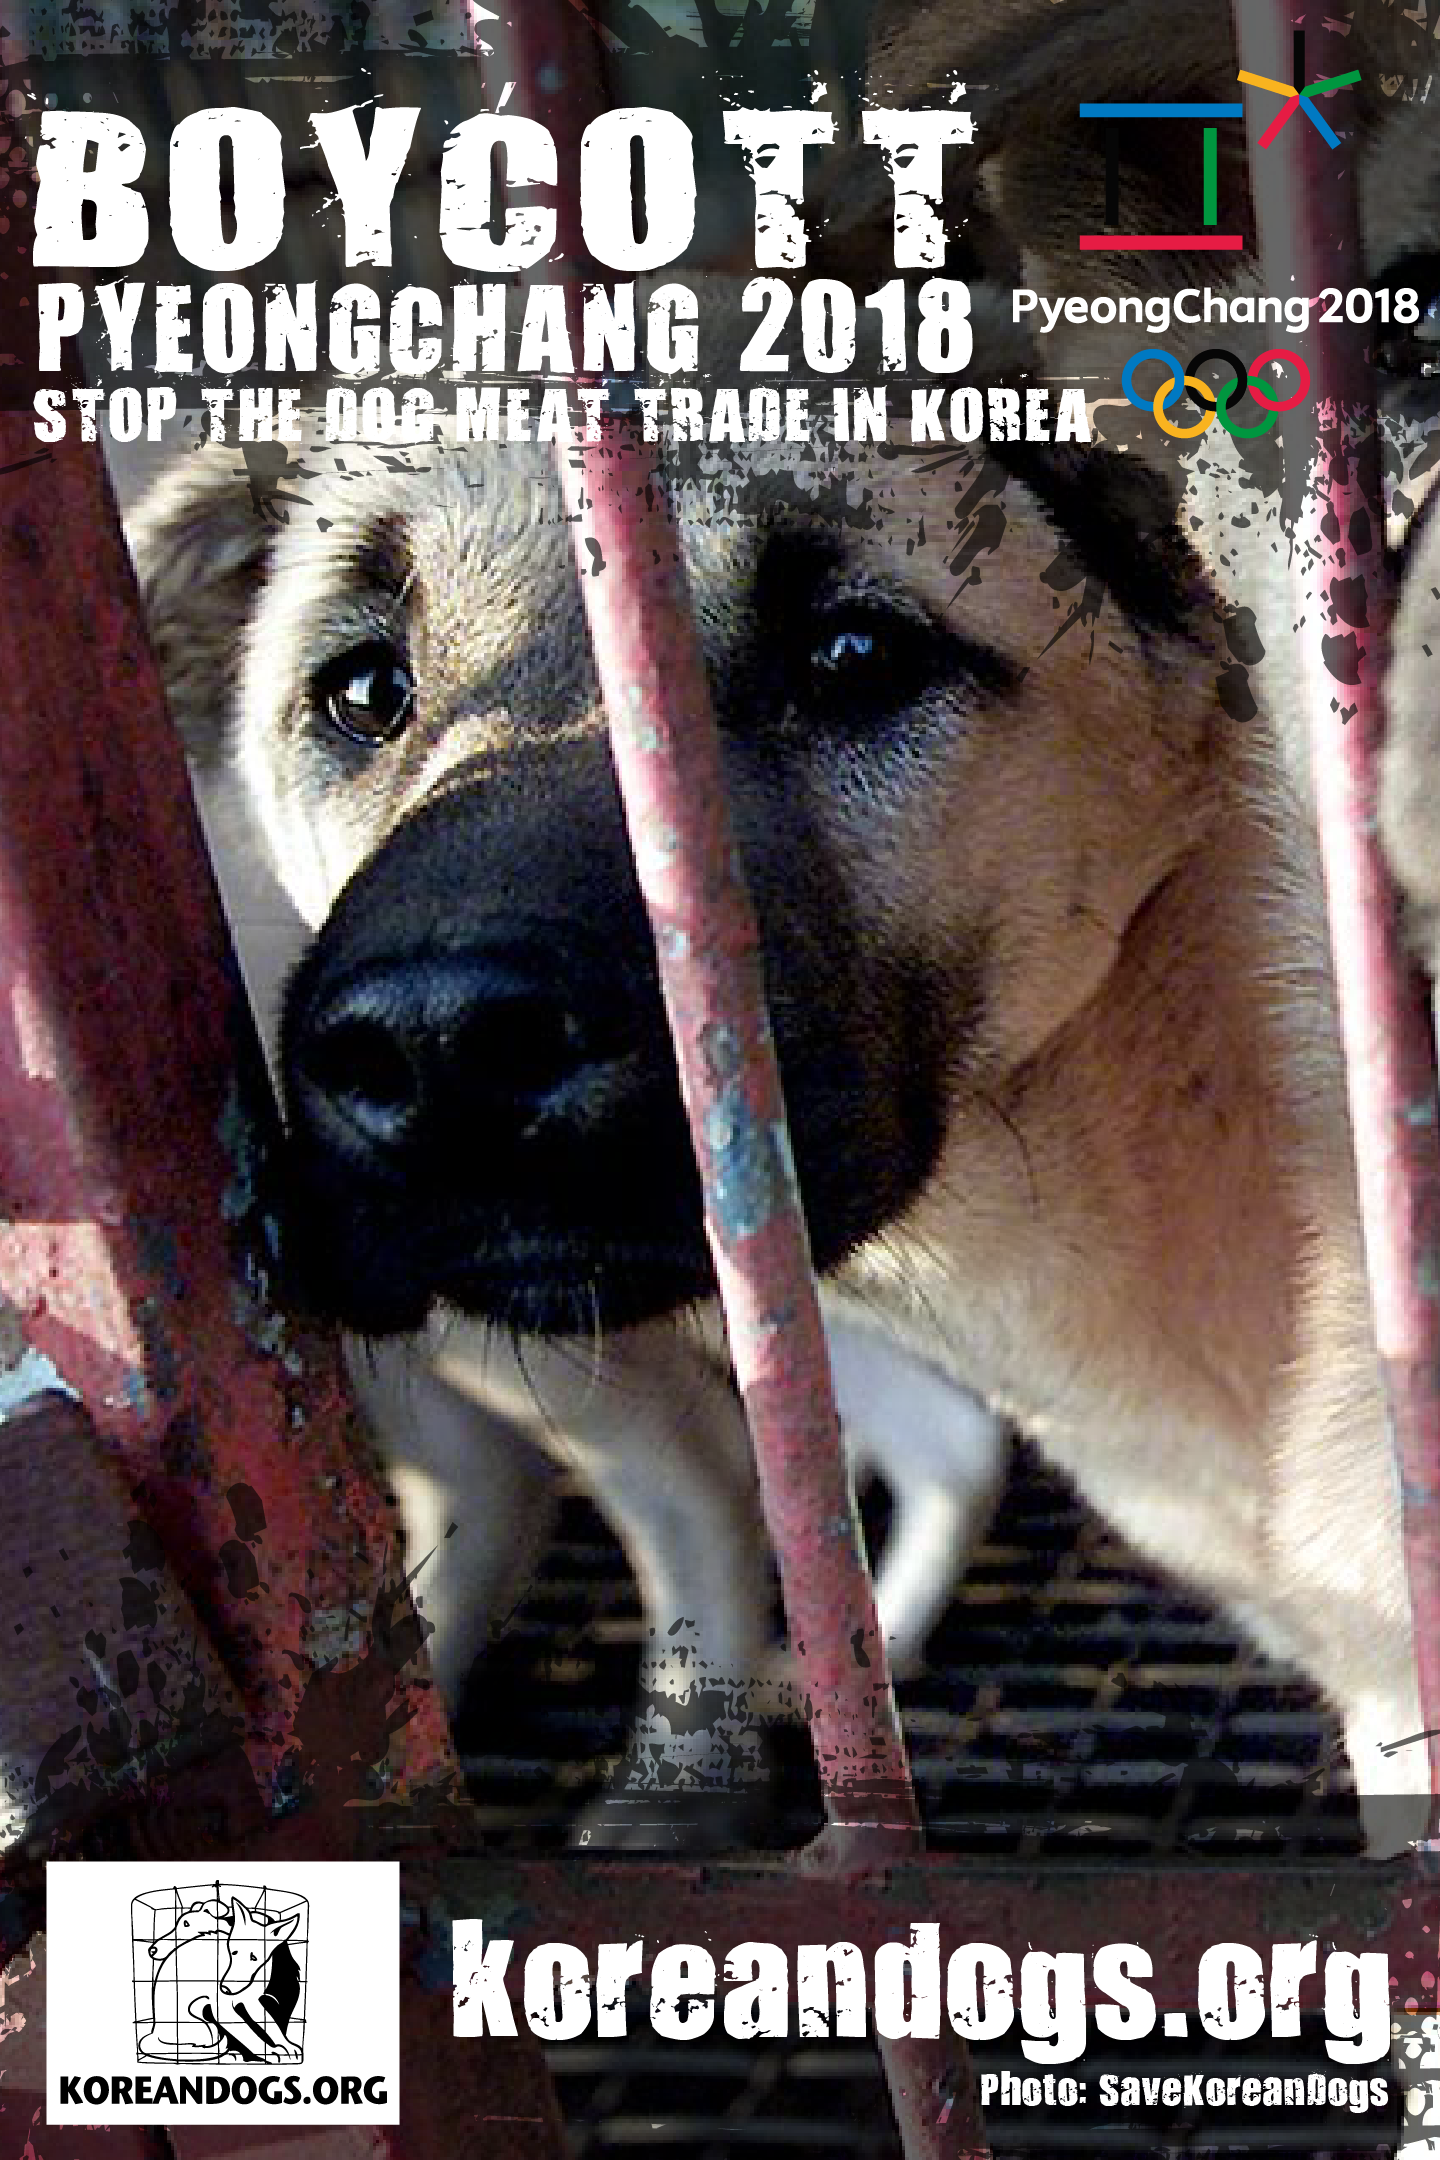 http://koreandogs.org/noc-take-a-stand/?utm_source=sendinblue&utm_campaign=New_Calls_for_Action!__Korean_government_petition_and_more&utm_medium=email